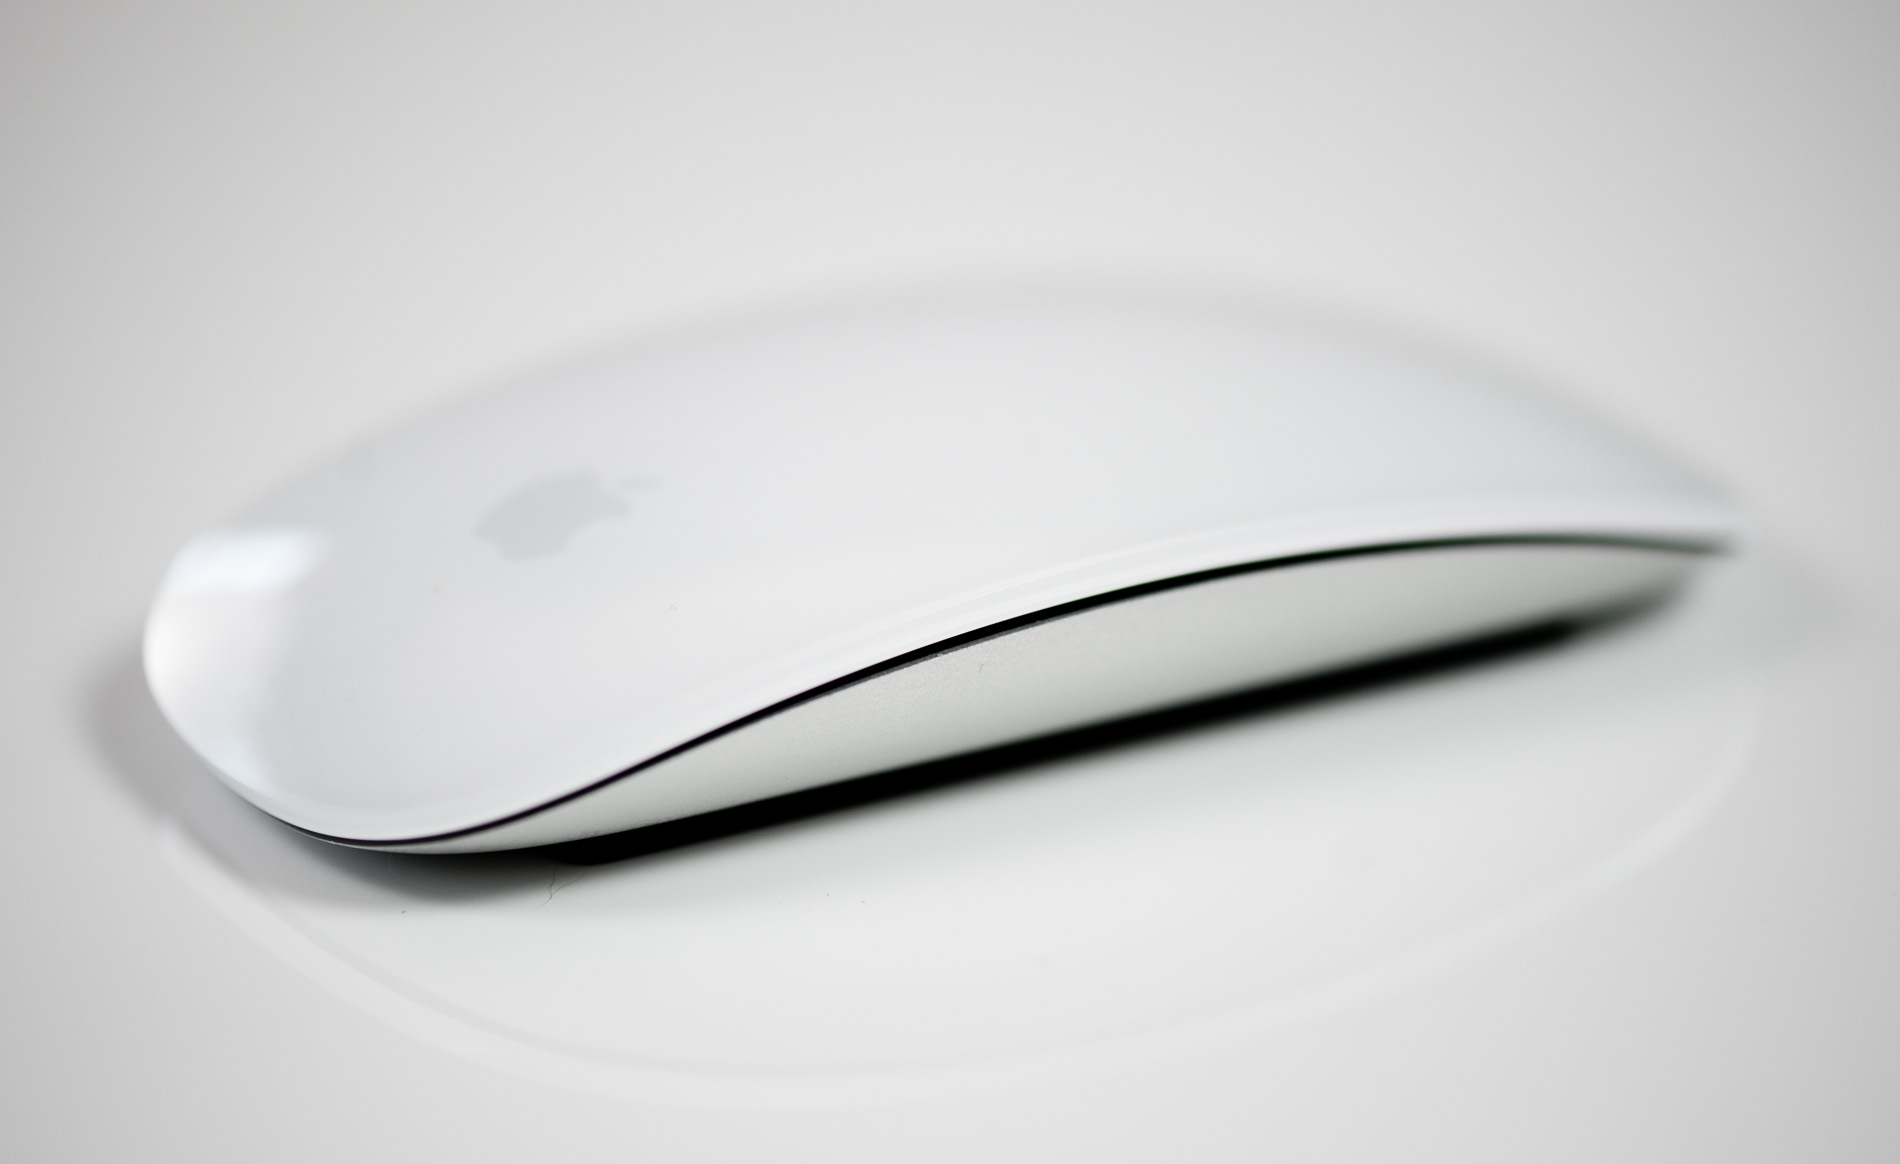 The Peripherals - The 27-inch Apple iMac Review (2011)